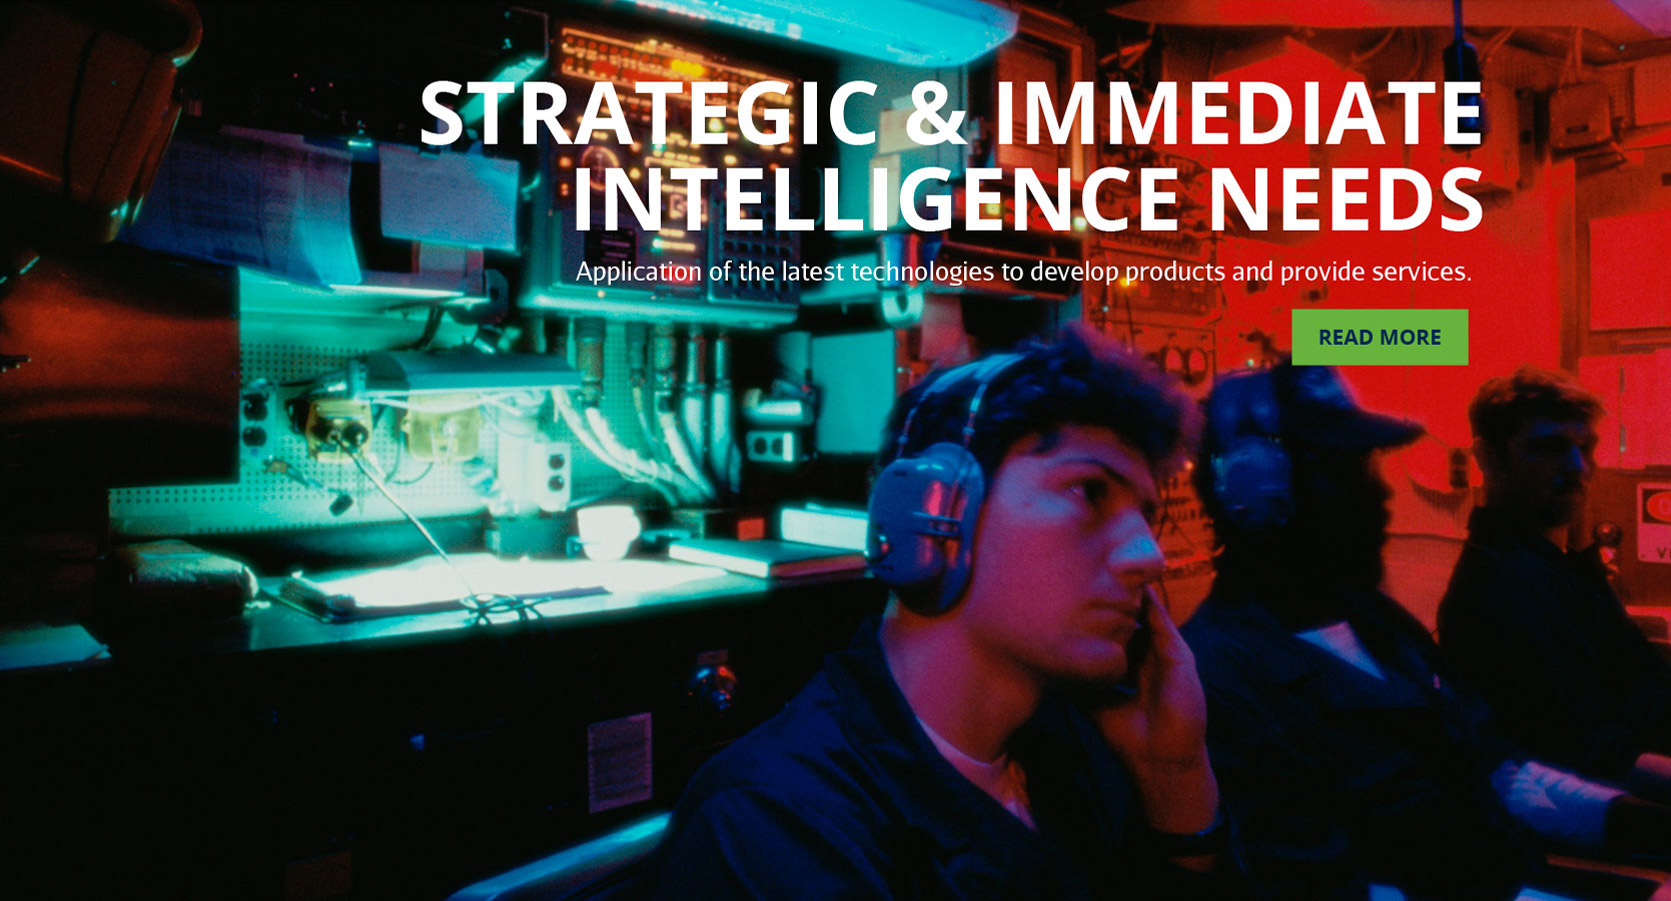 Strategic & Immediate Intelligence Needs